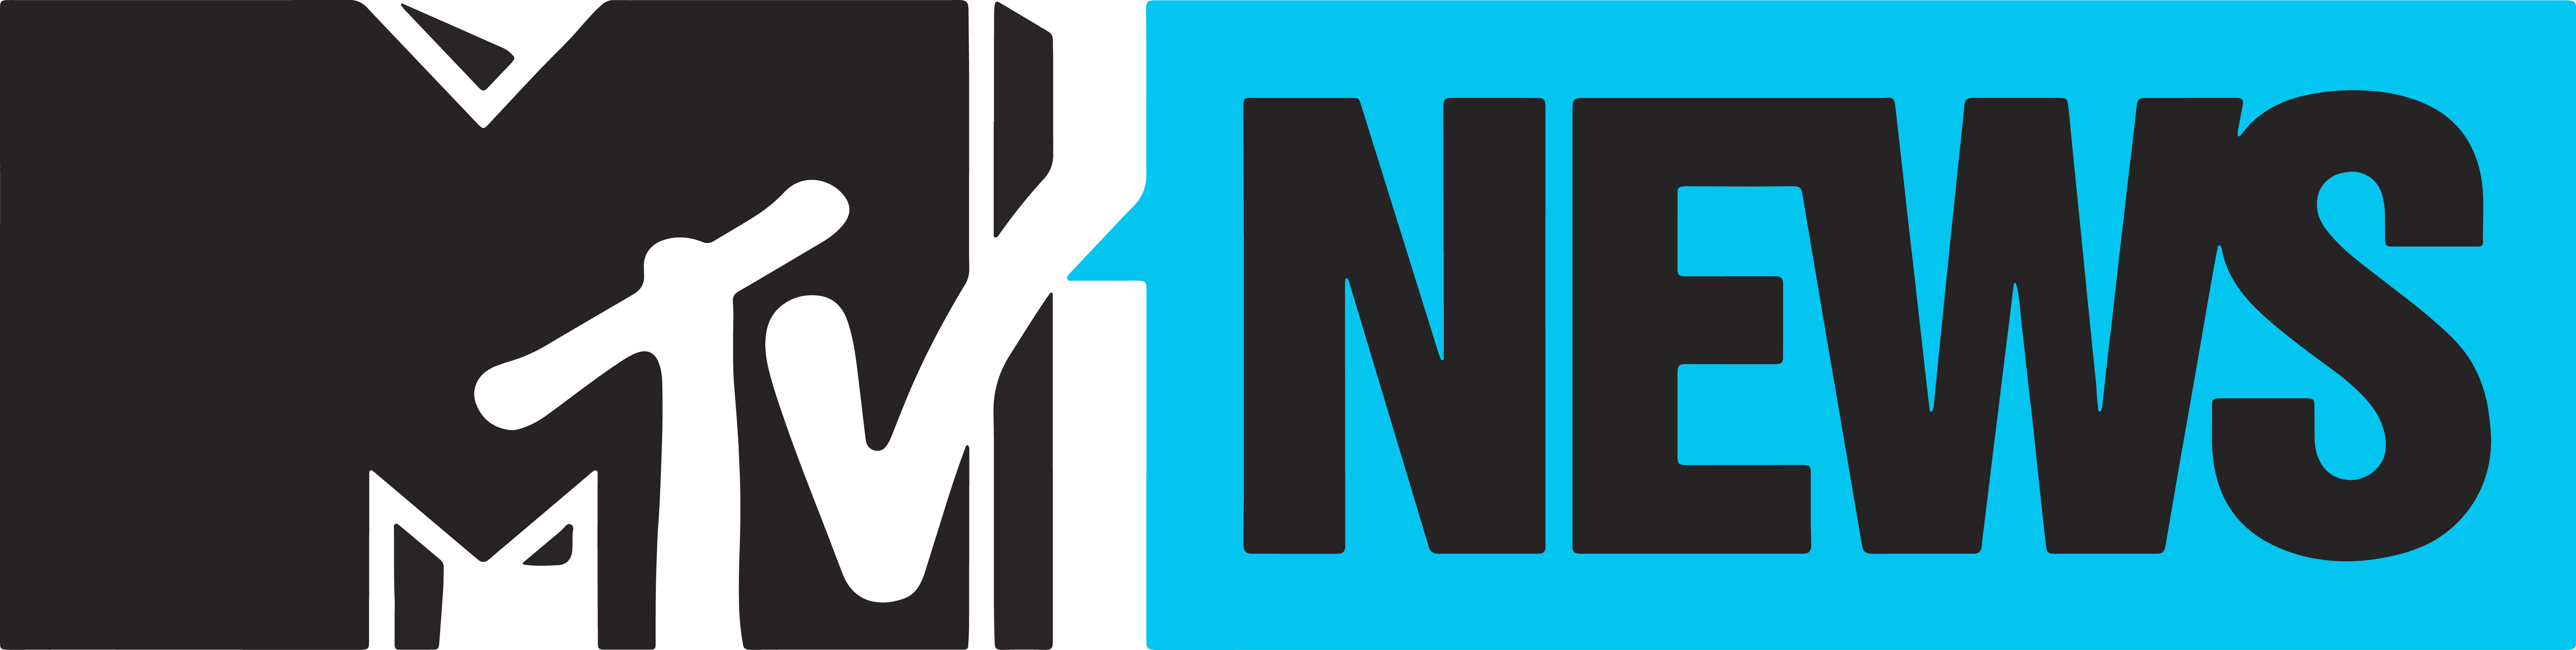 MTV News logo